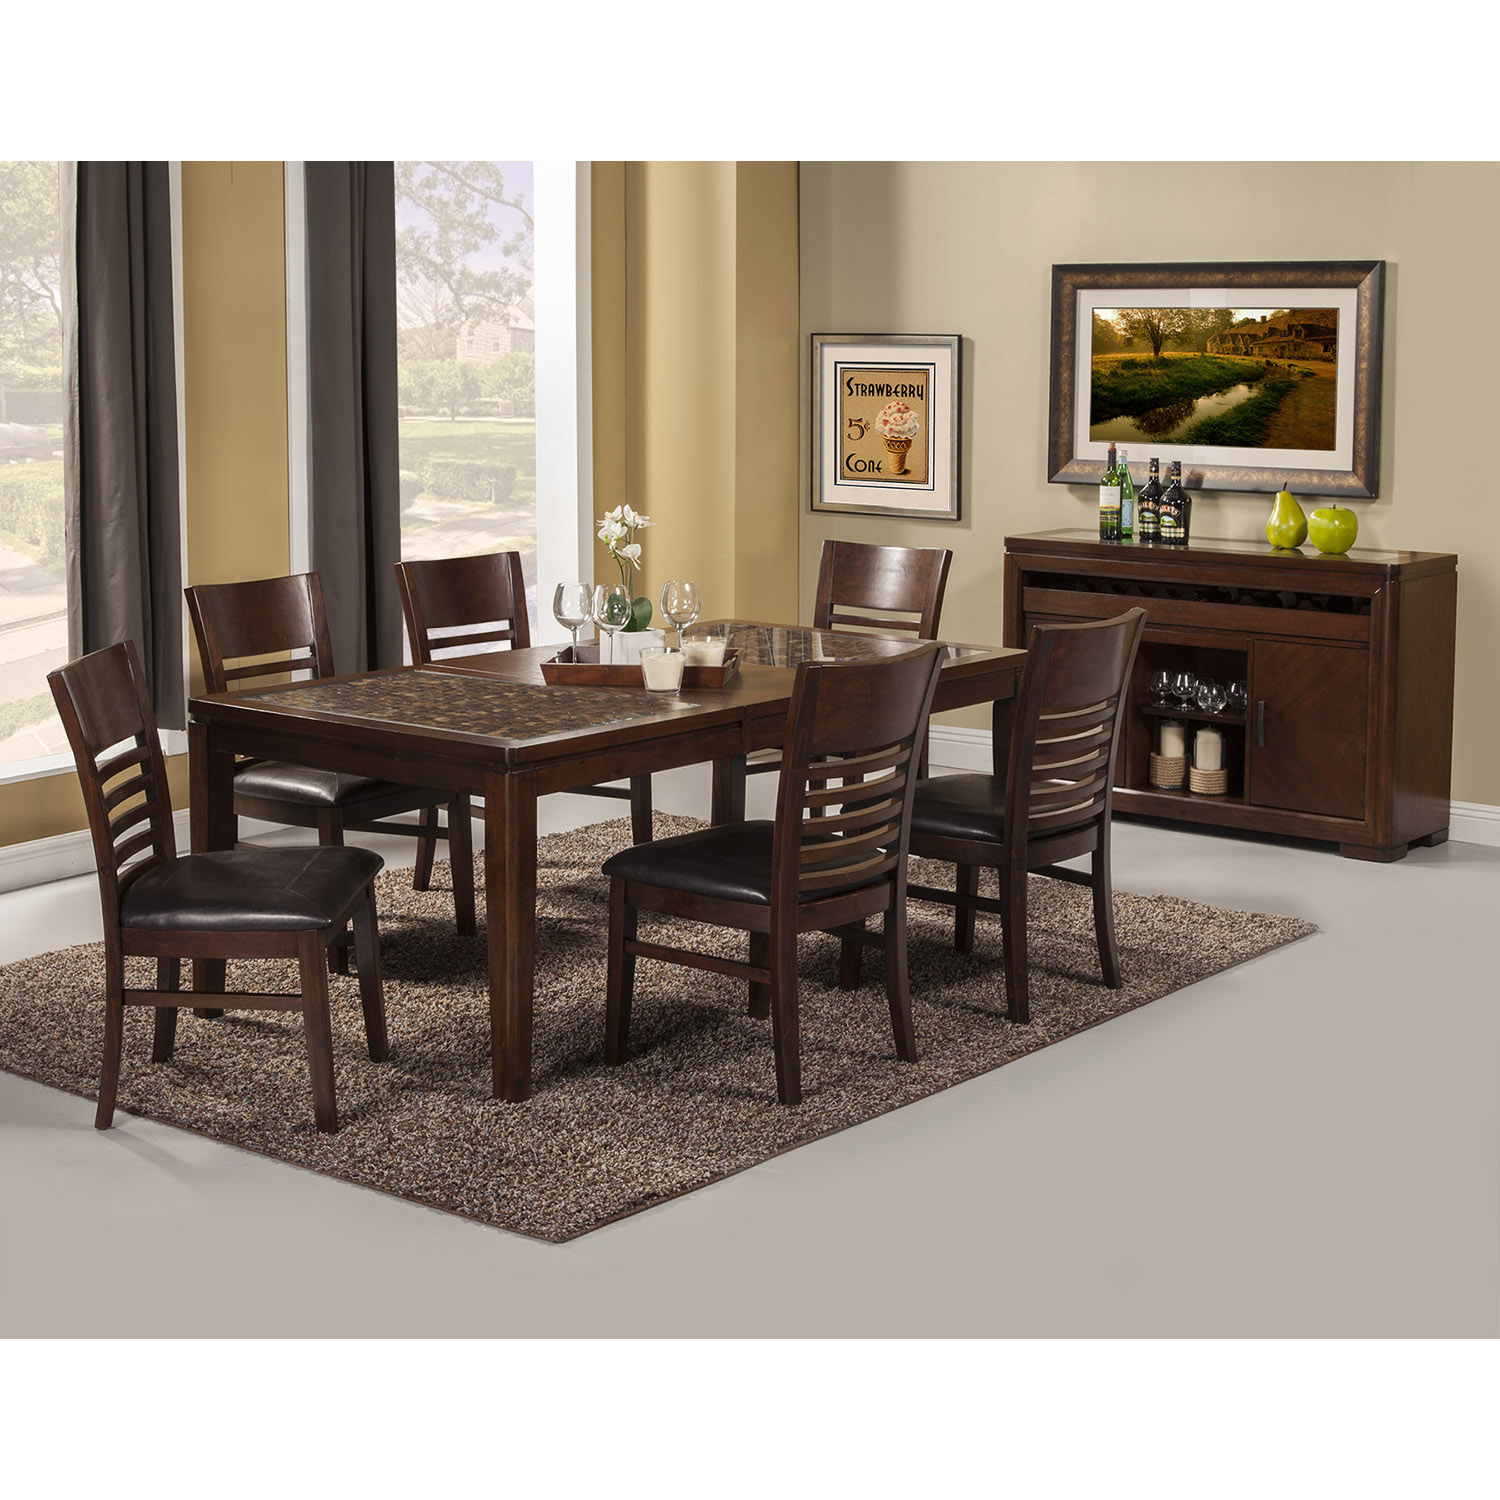 Granada 7-Piece Dining Set - Brown Merlot - ALP-1437-SET-7PC